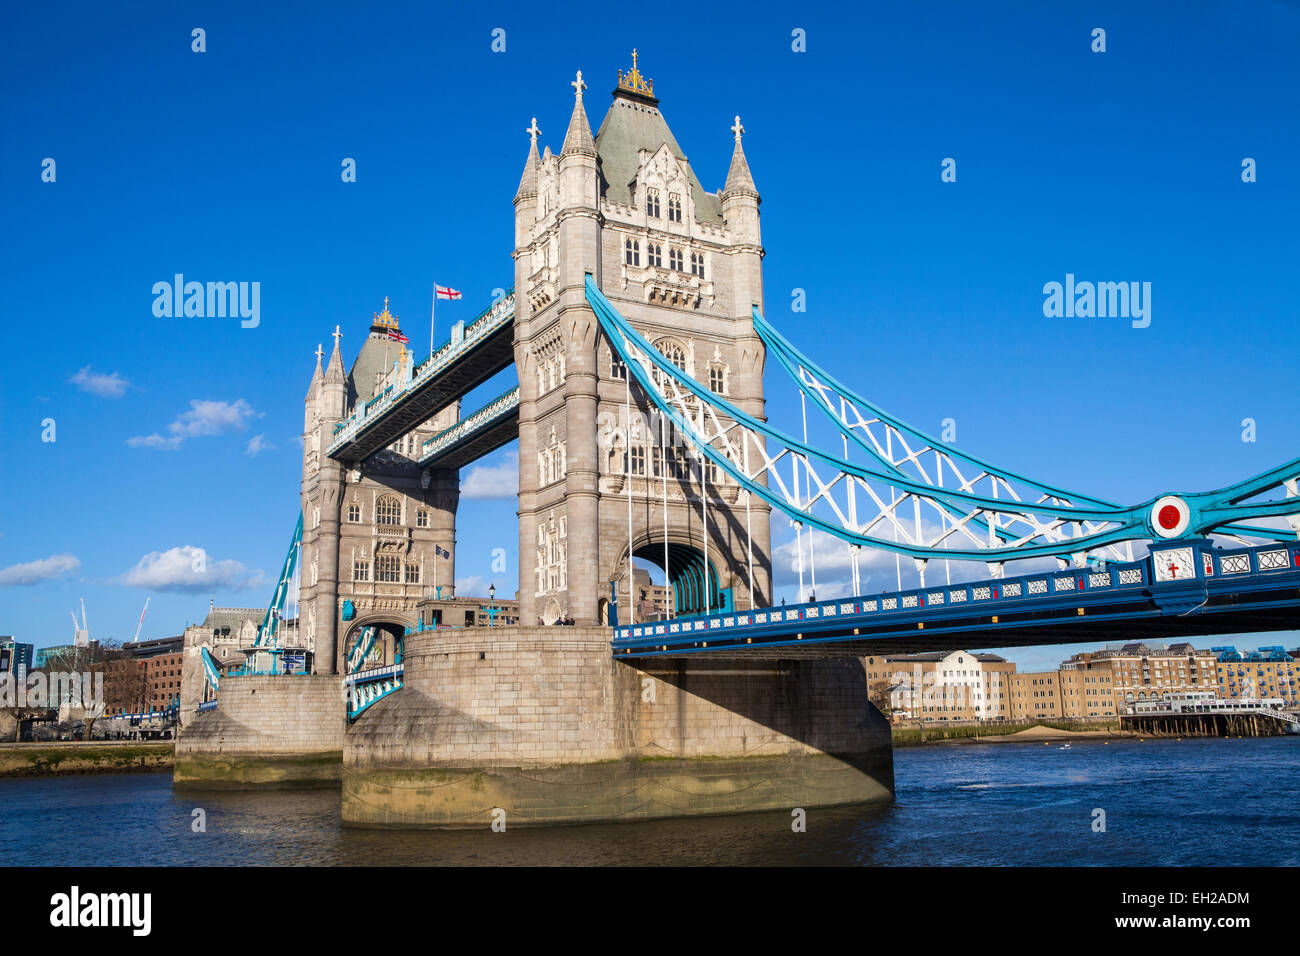 La belle tour pont sous un ciel bleu clair à Londres. Photo Stock